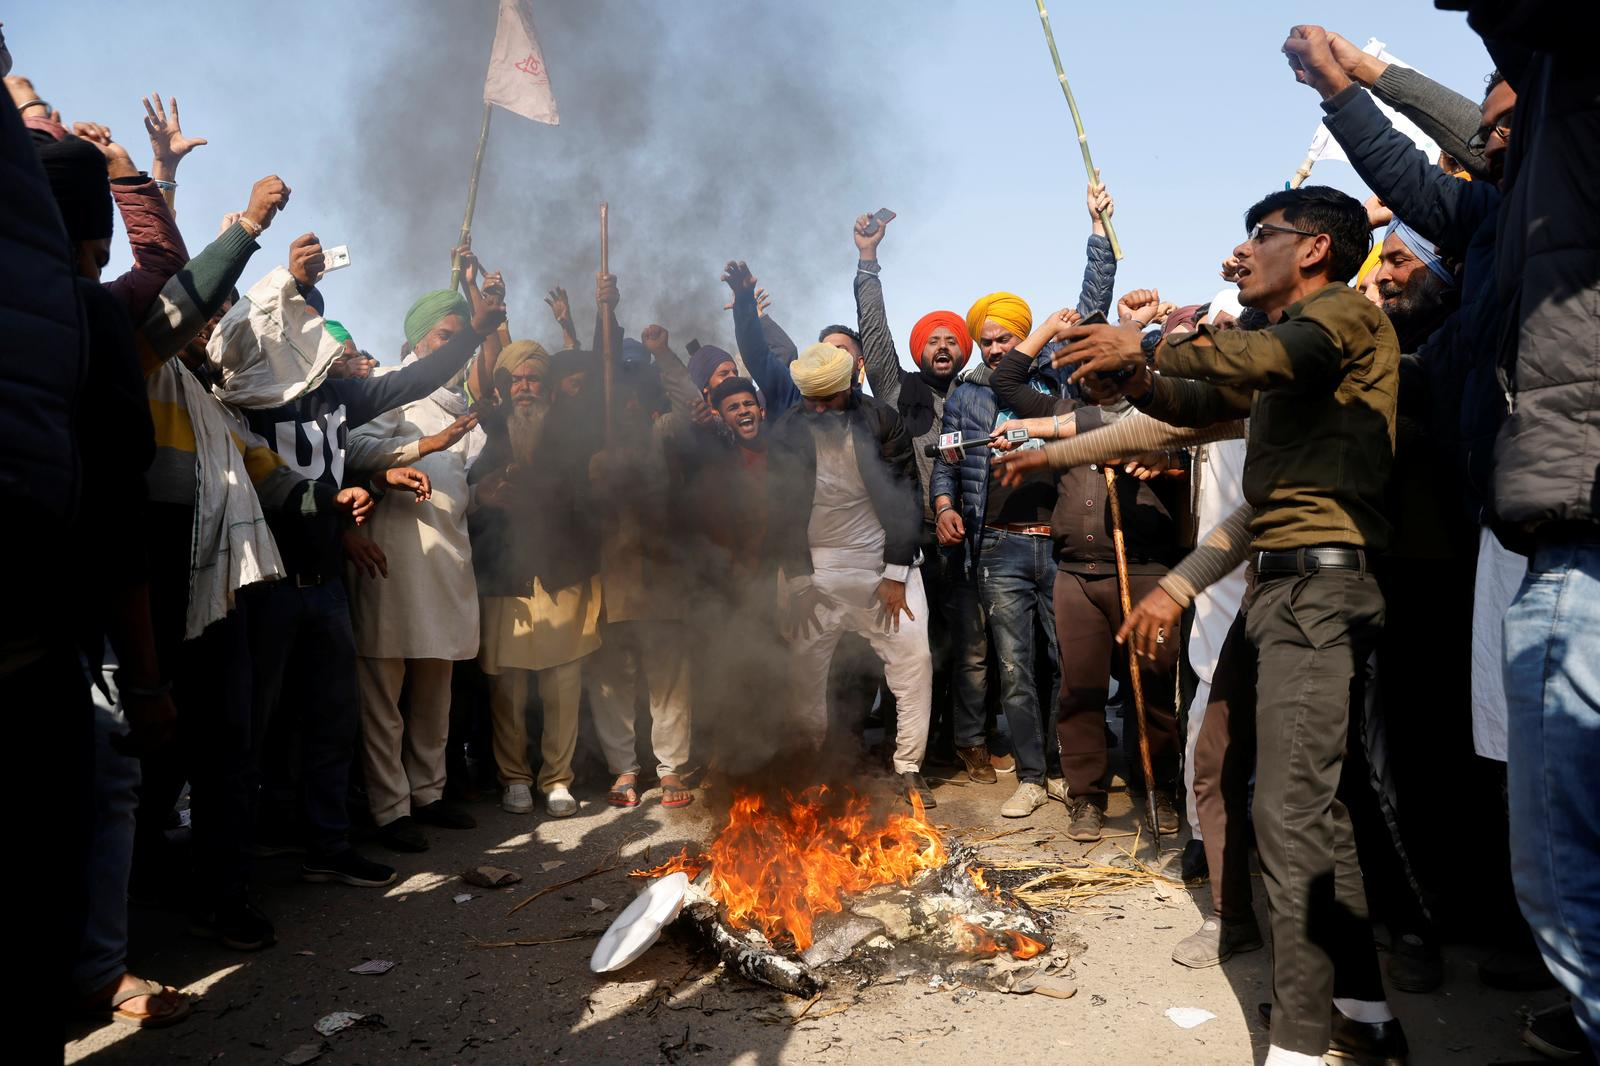 Farmers shout slogans as they burn an effigy during a protest against the newly passed farm bills at Singhu border near Delhi, India, November 28, 2020. Photo: Reuters